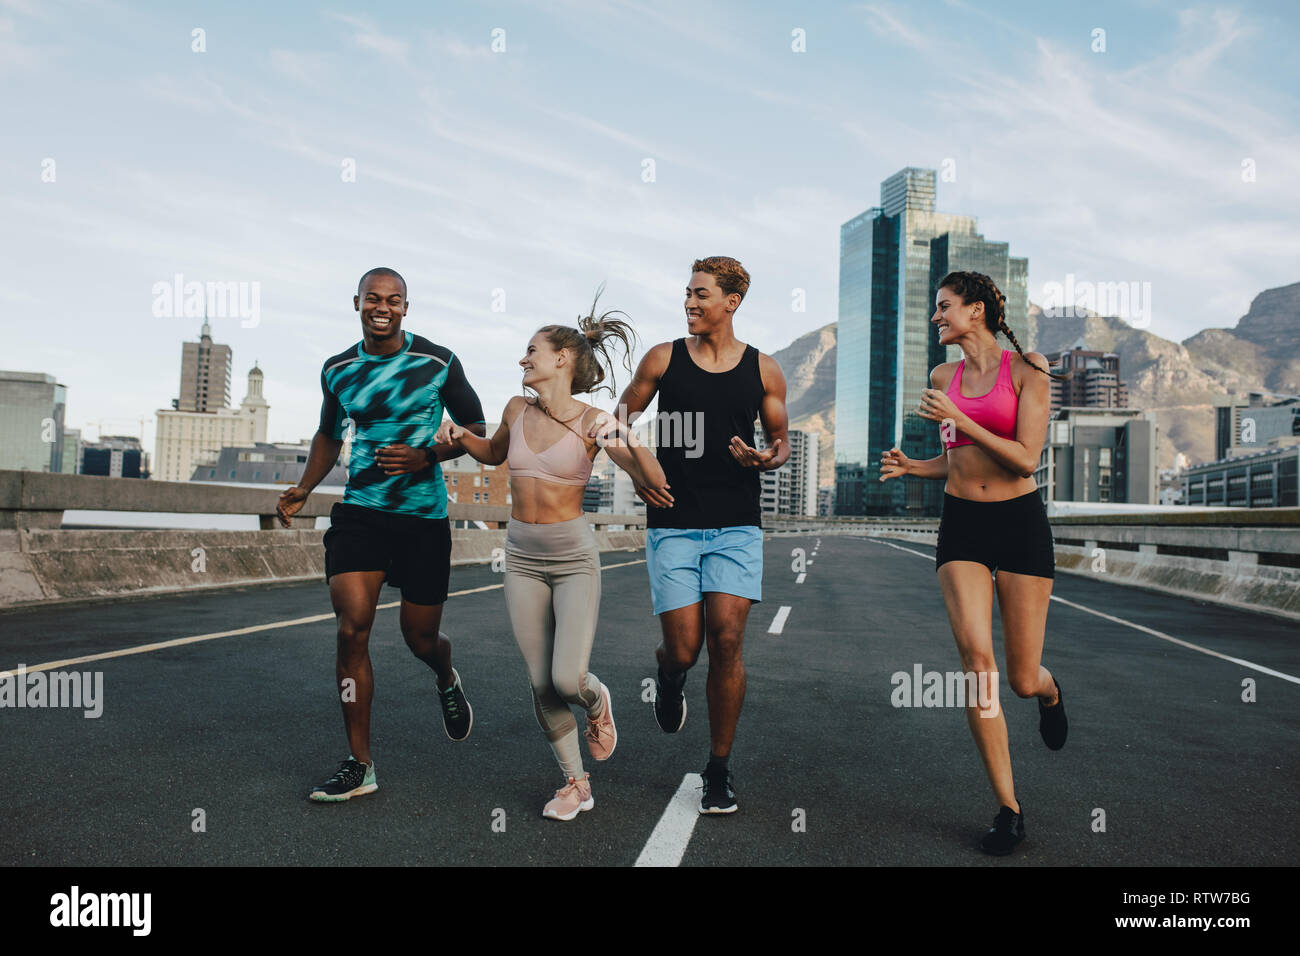 Healthy young people running together in morning on street. Runners training together outdoors in morning. - Stock Image